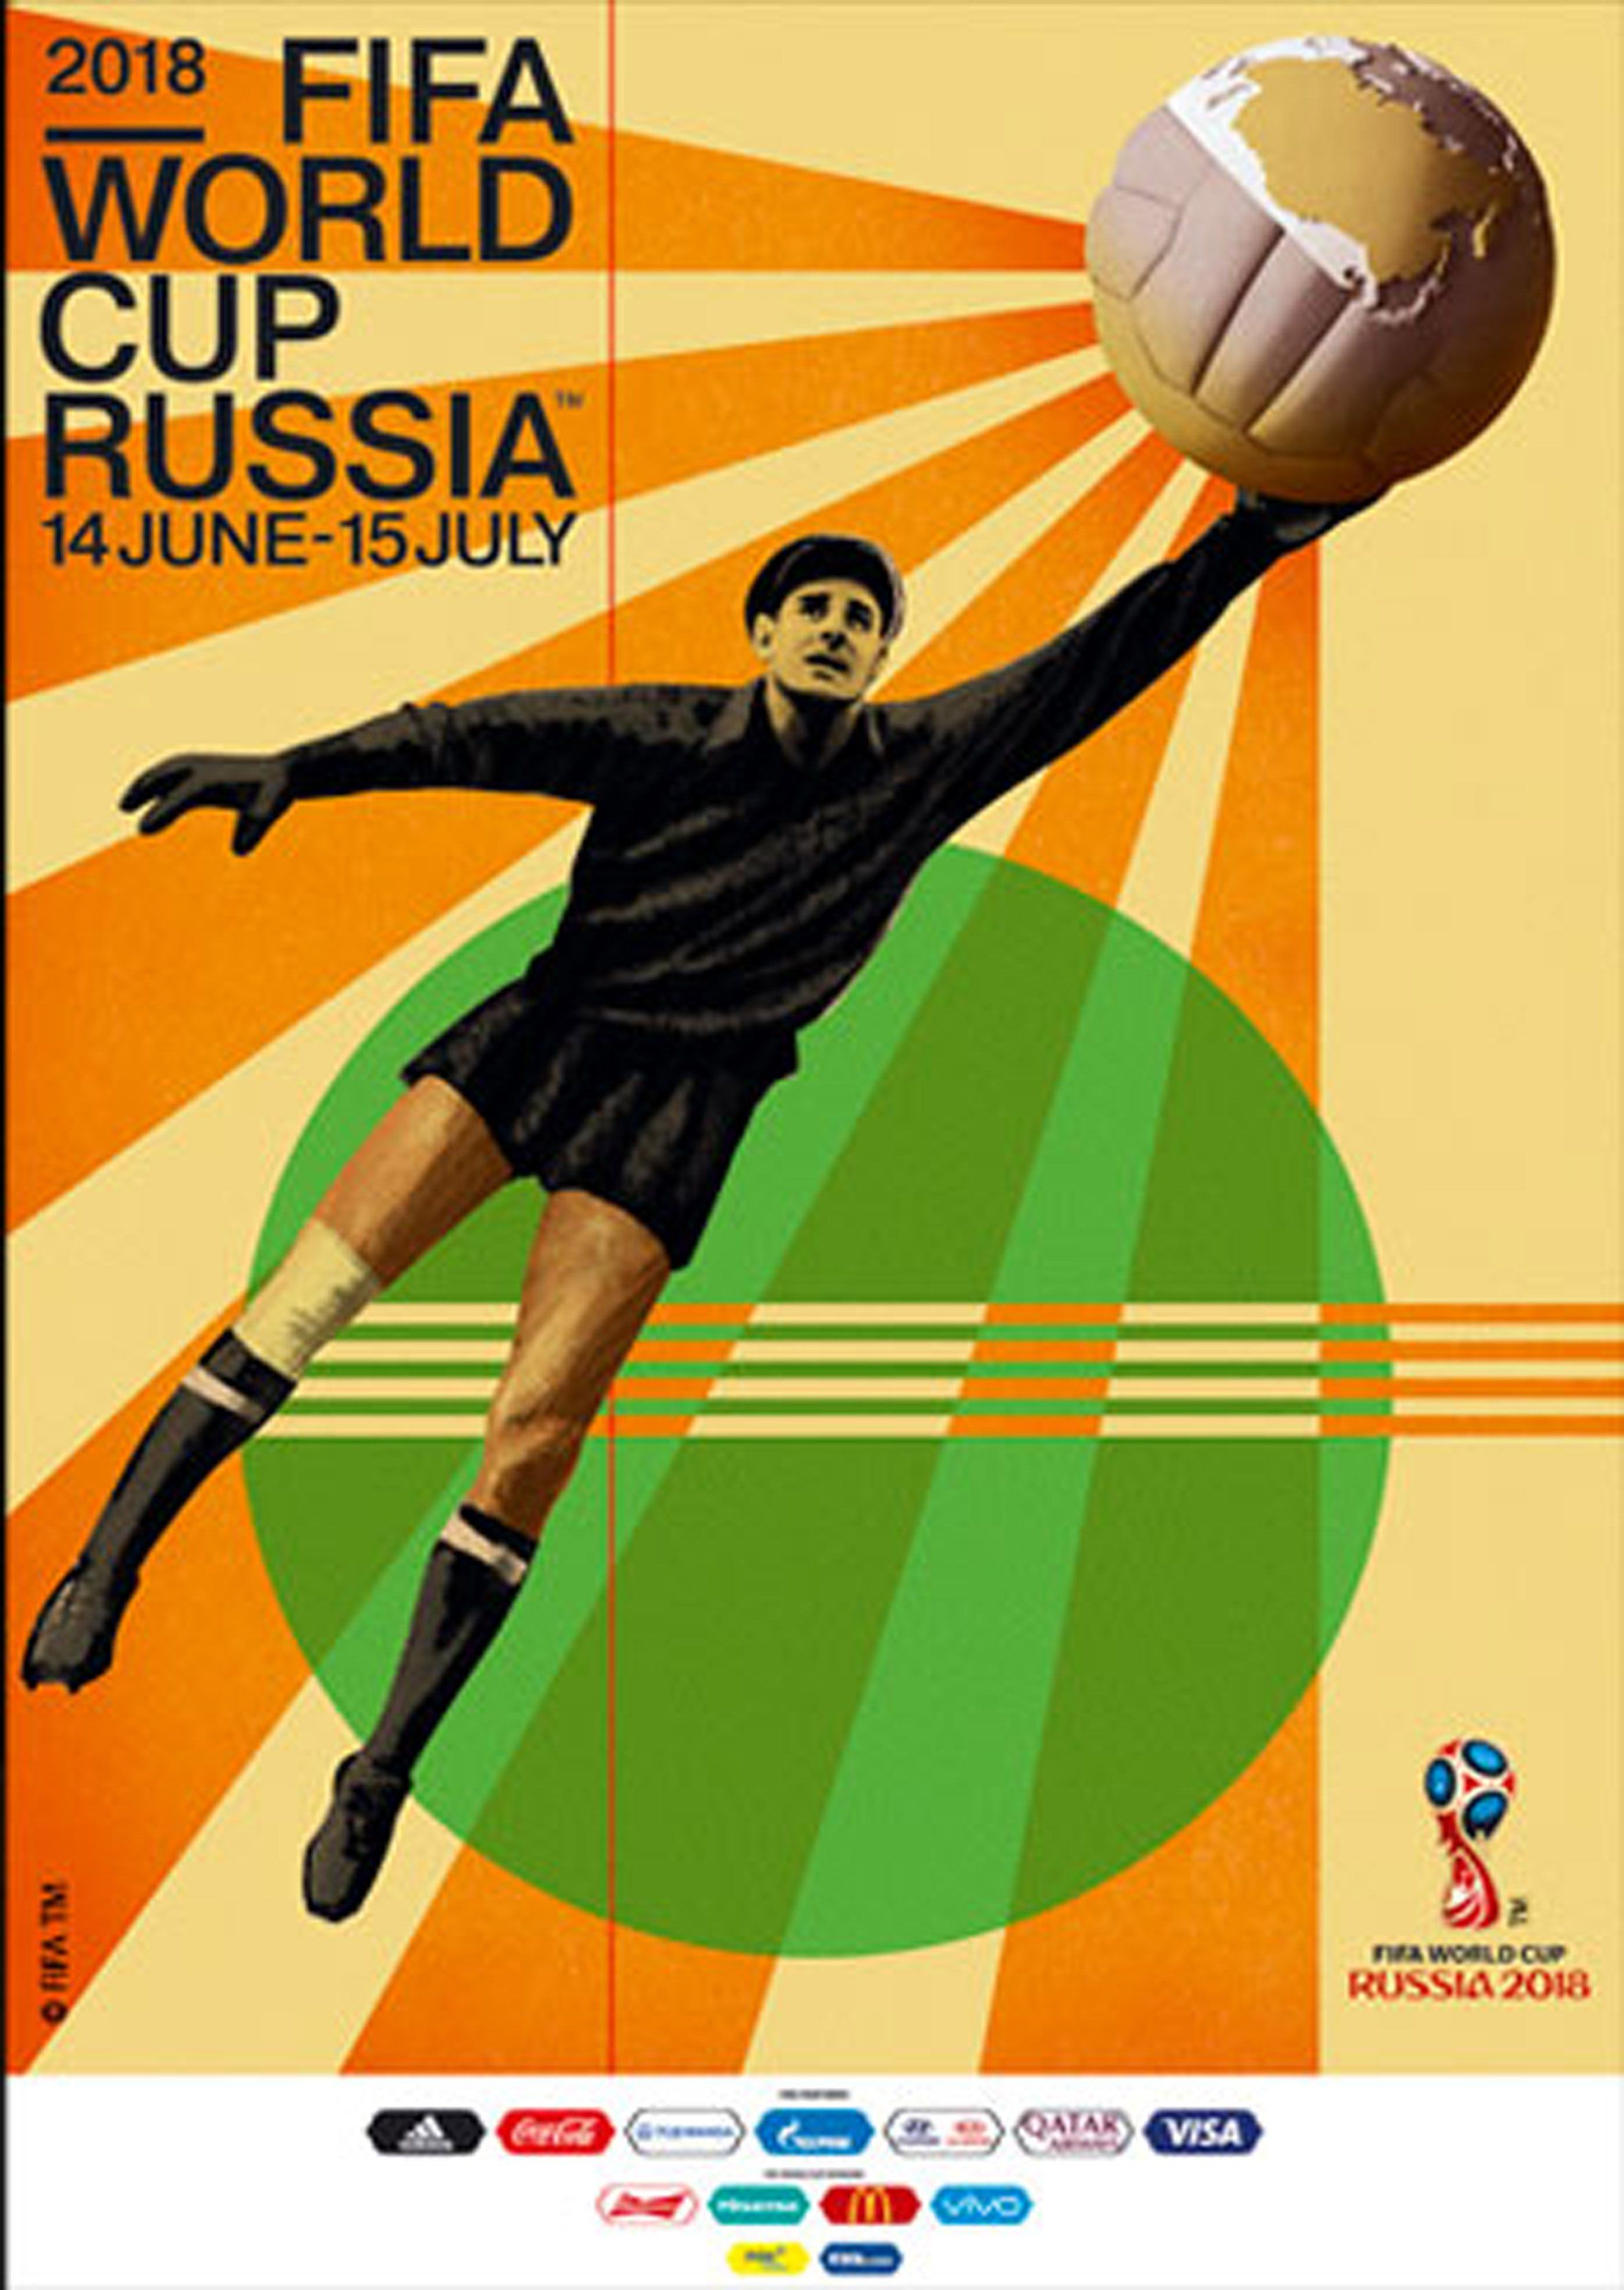 2c89ace86 Igor Gurovich designs retro poster for 2018 FIFA World Cup in Russia ...